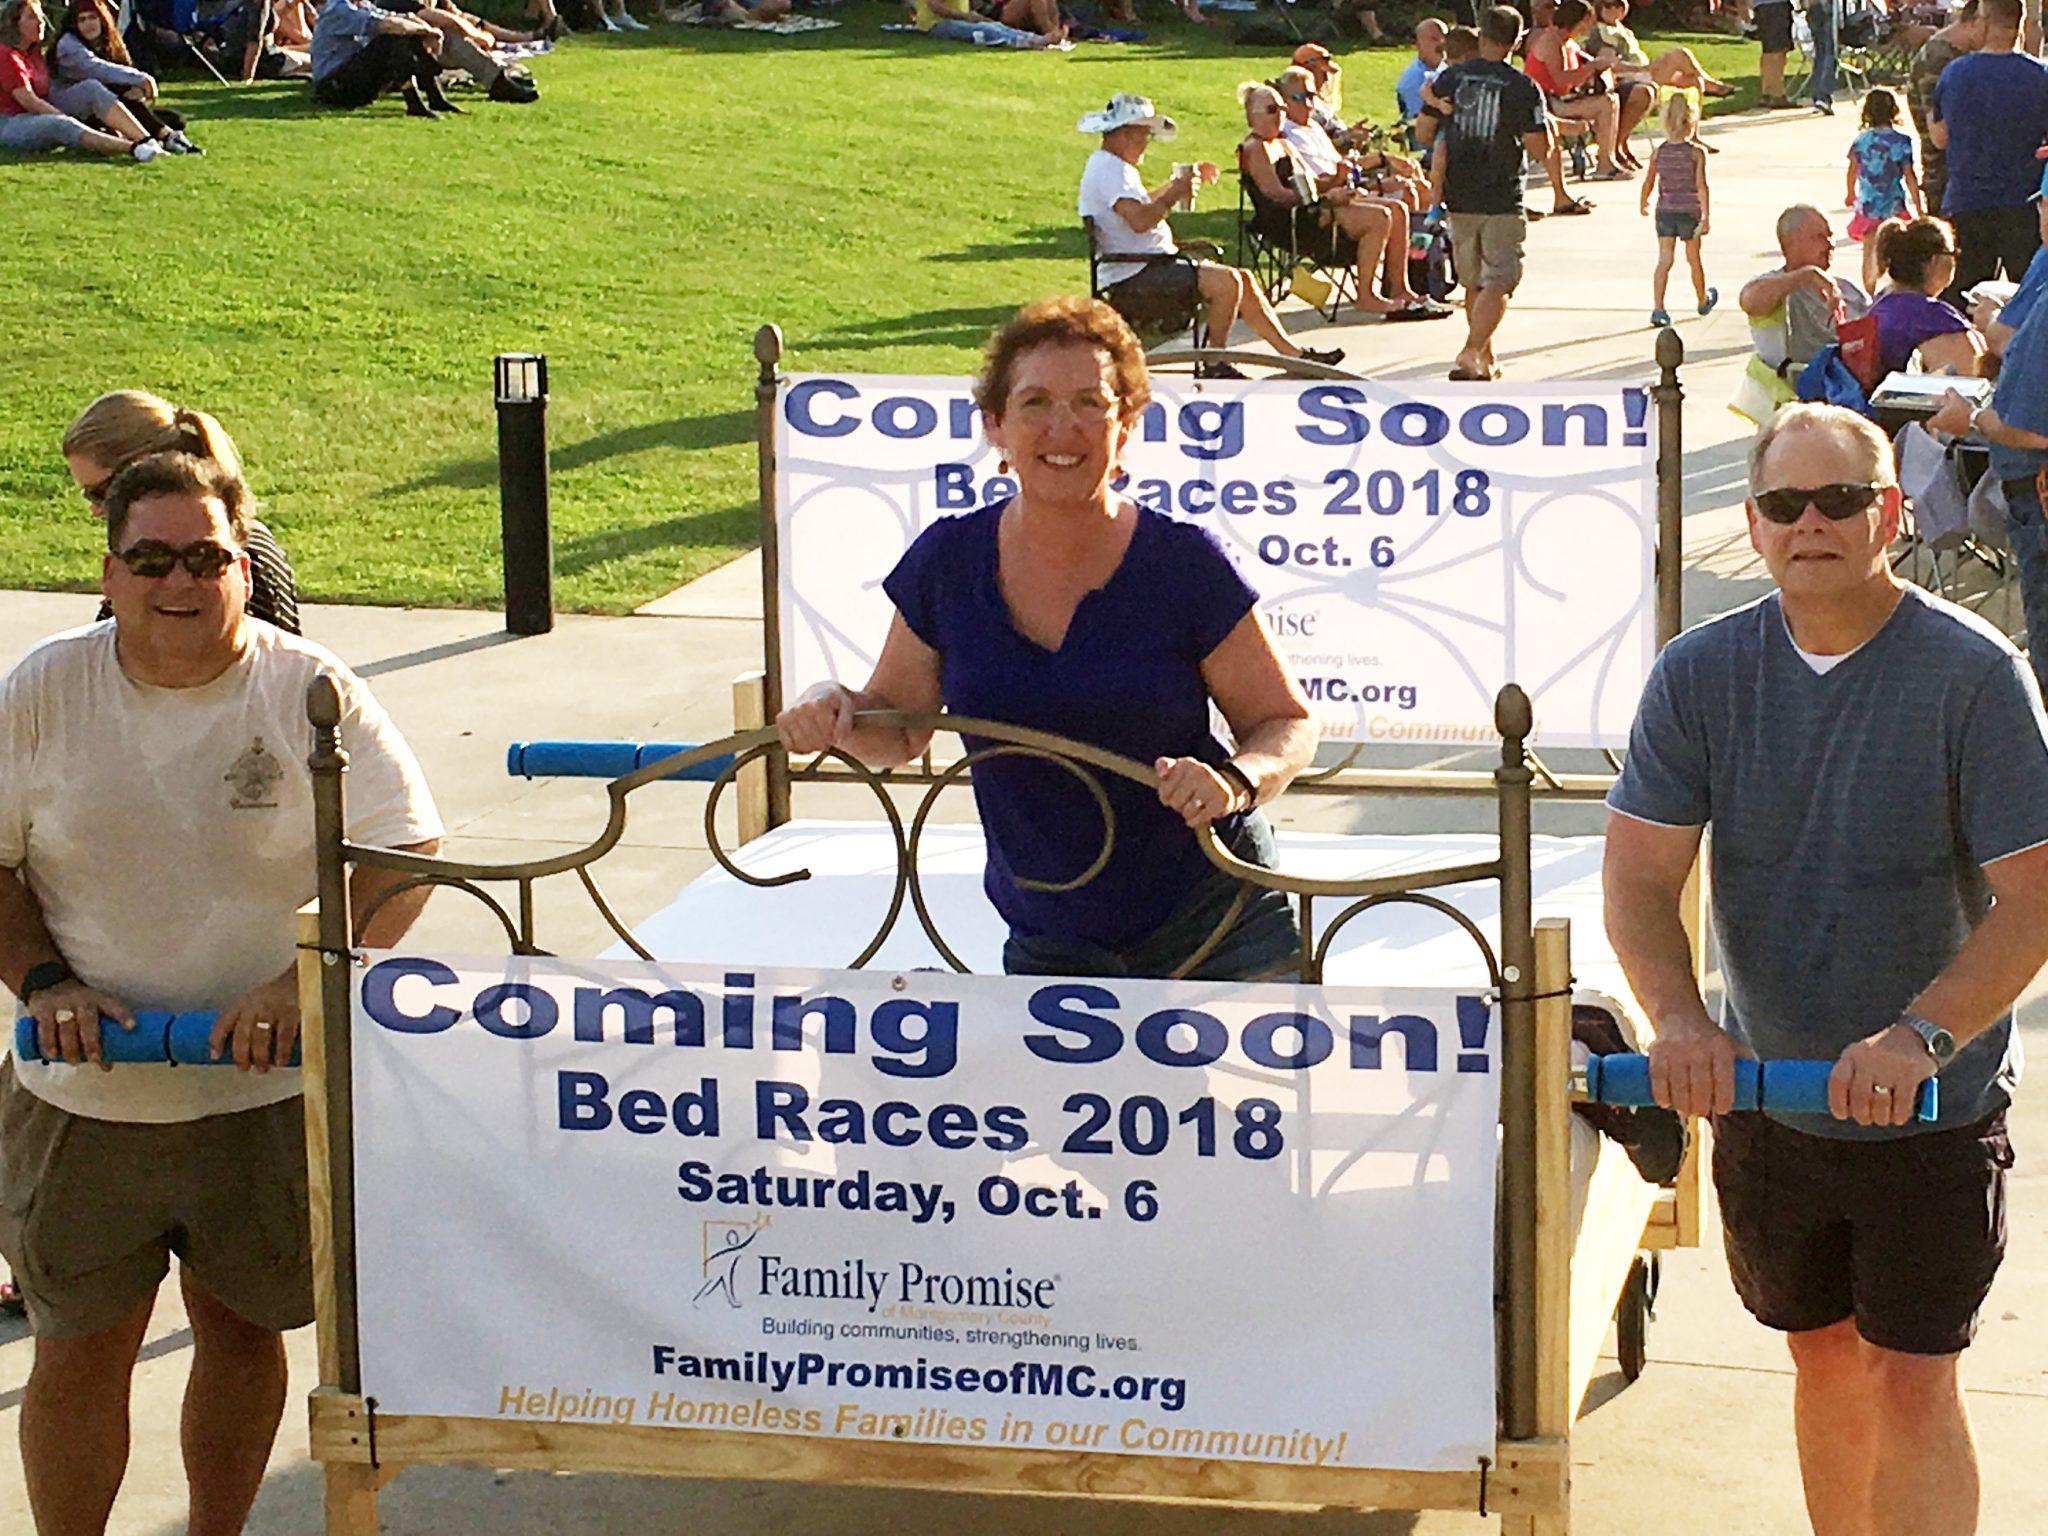 Family Promise 2018 Bed Races — Bed Races to assist homeless families with beds of their own